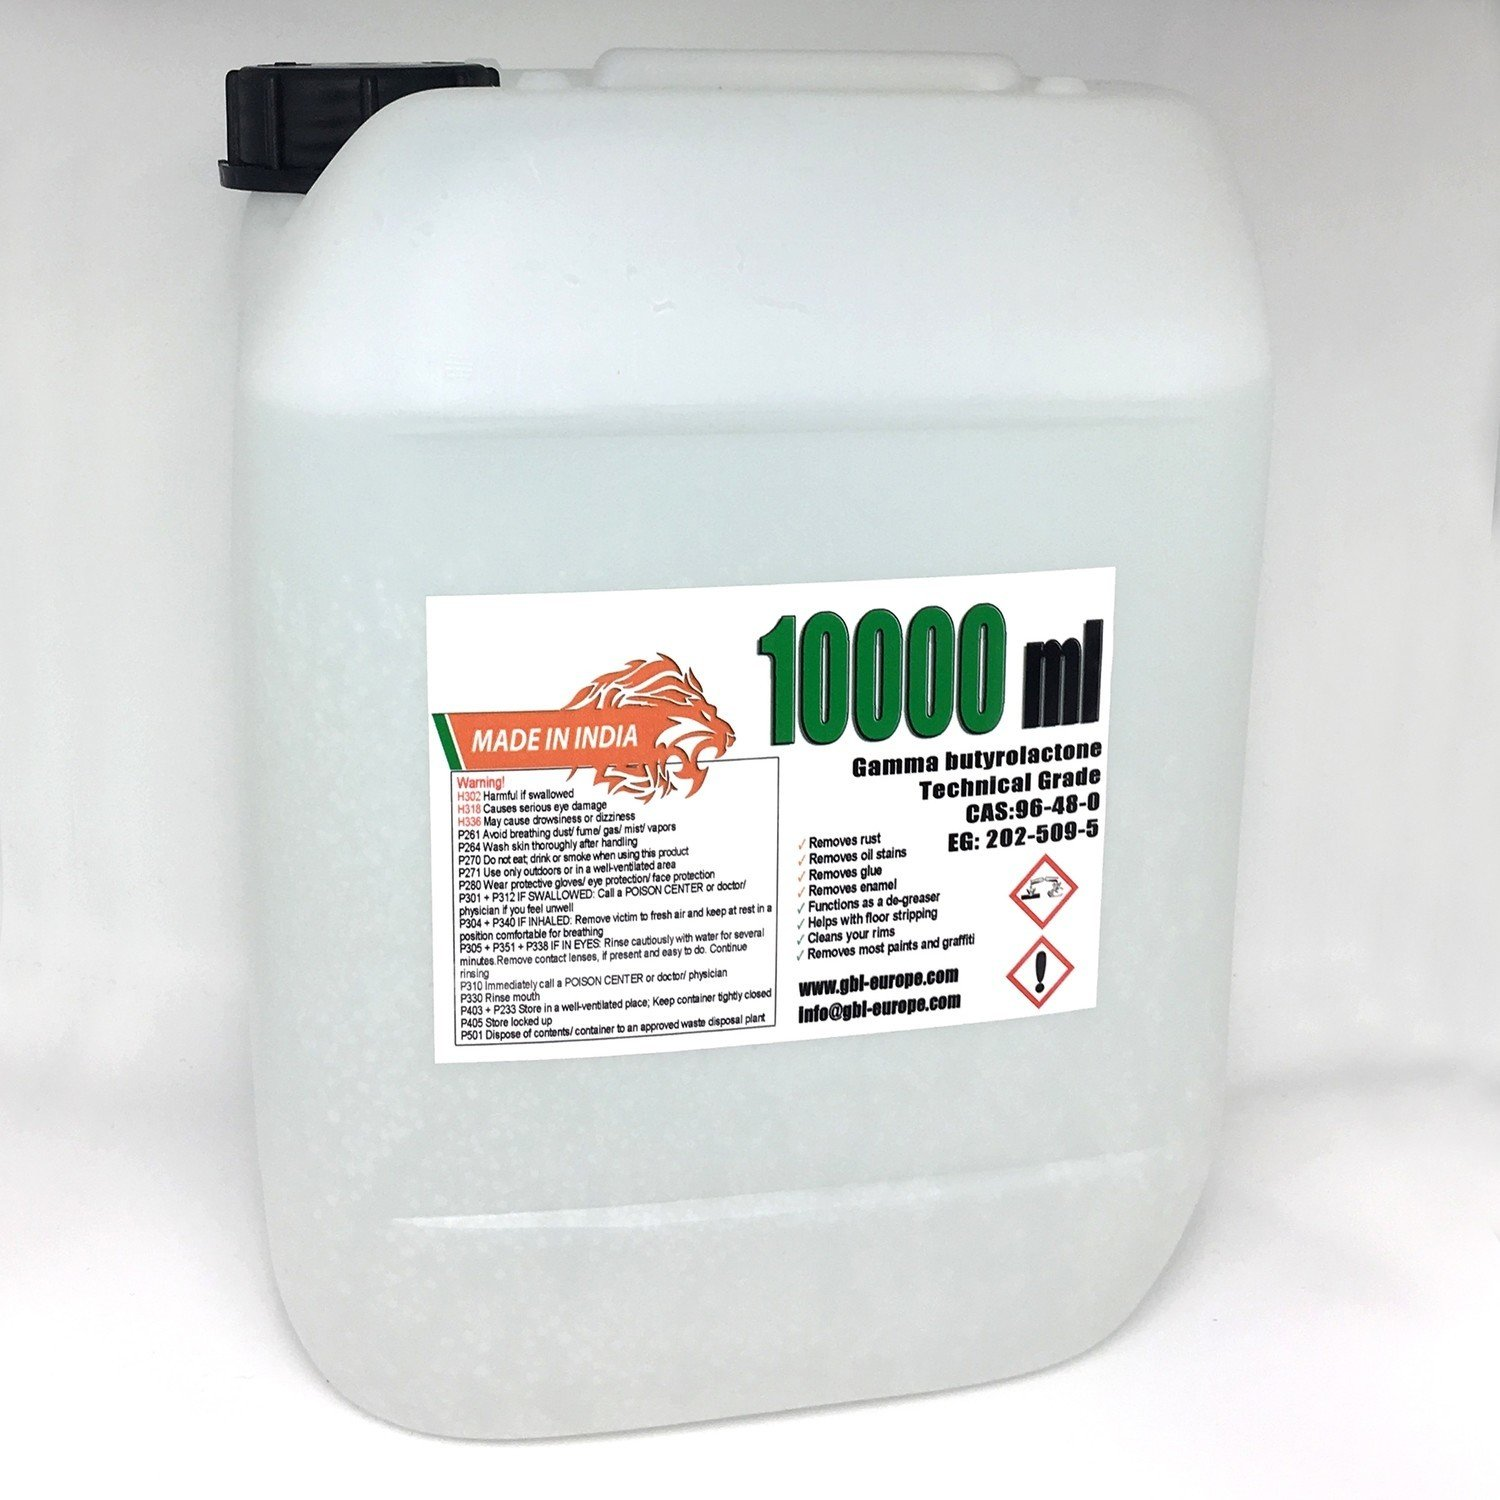 Multi Remover 10.000 ml Technical Grade India Canister + with every order 1x 500 ml technical grade Free!